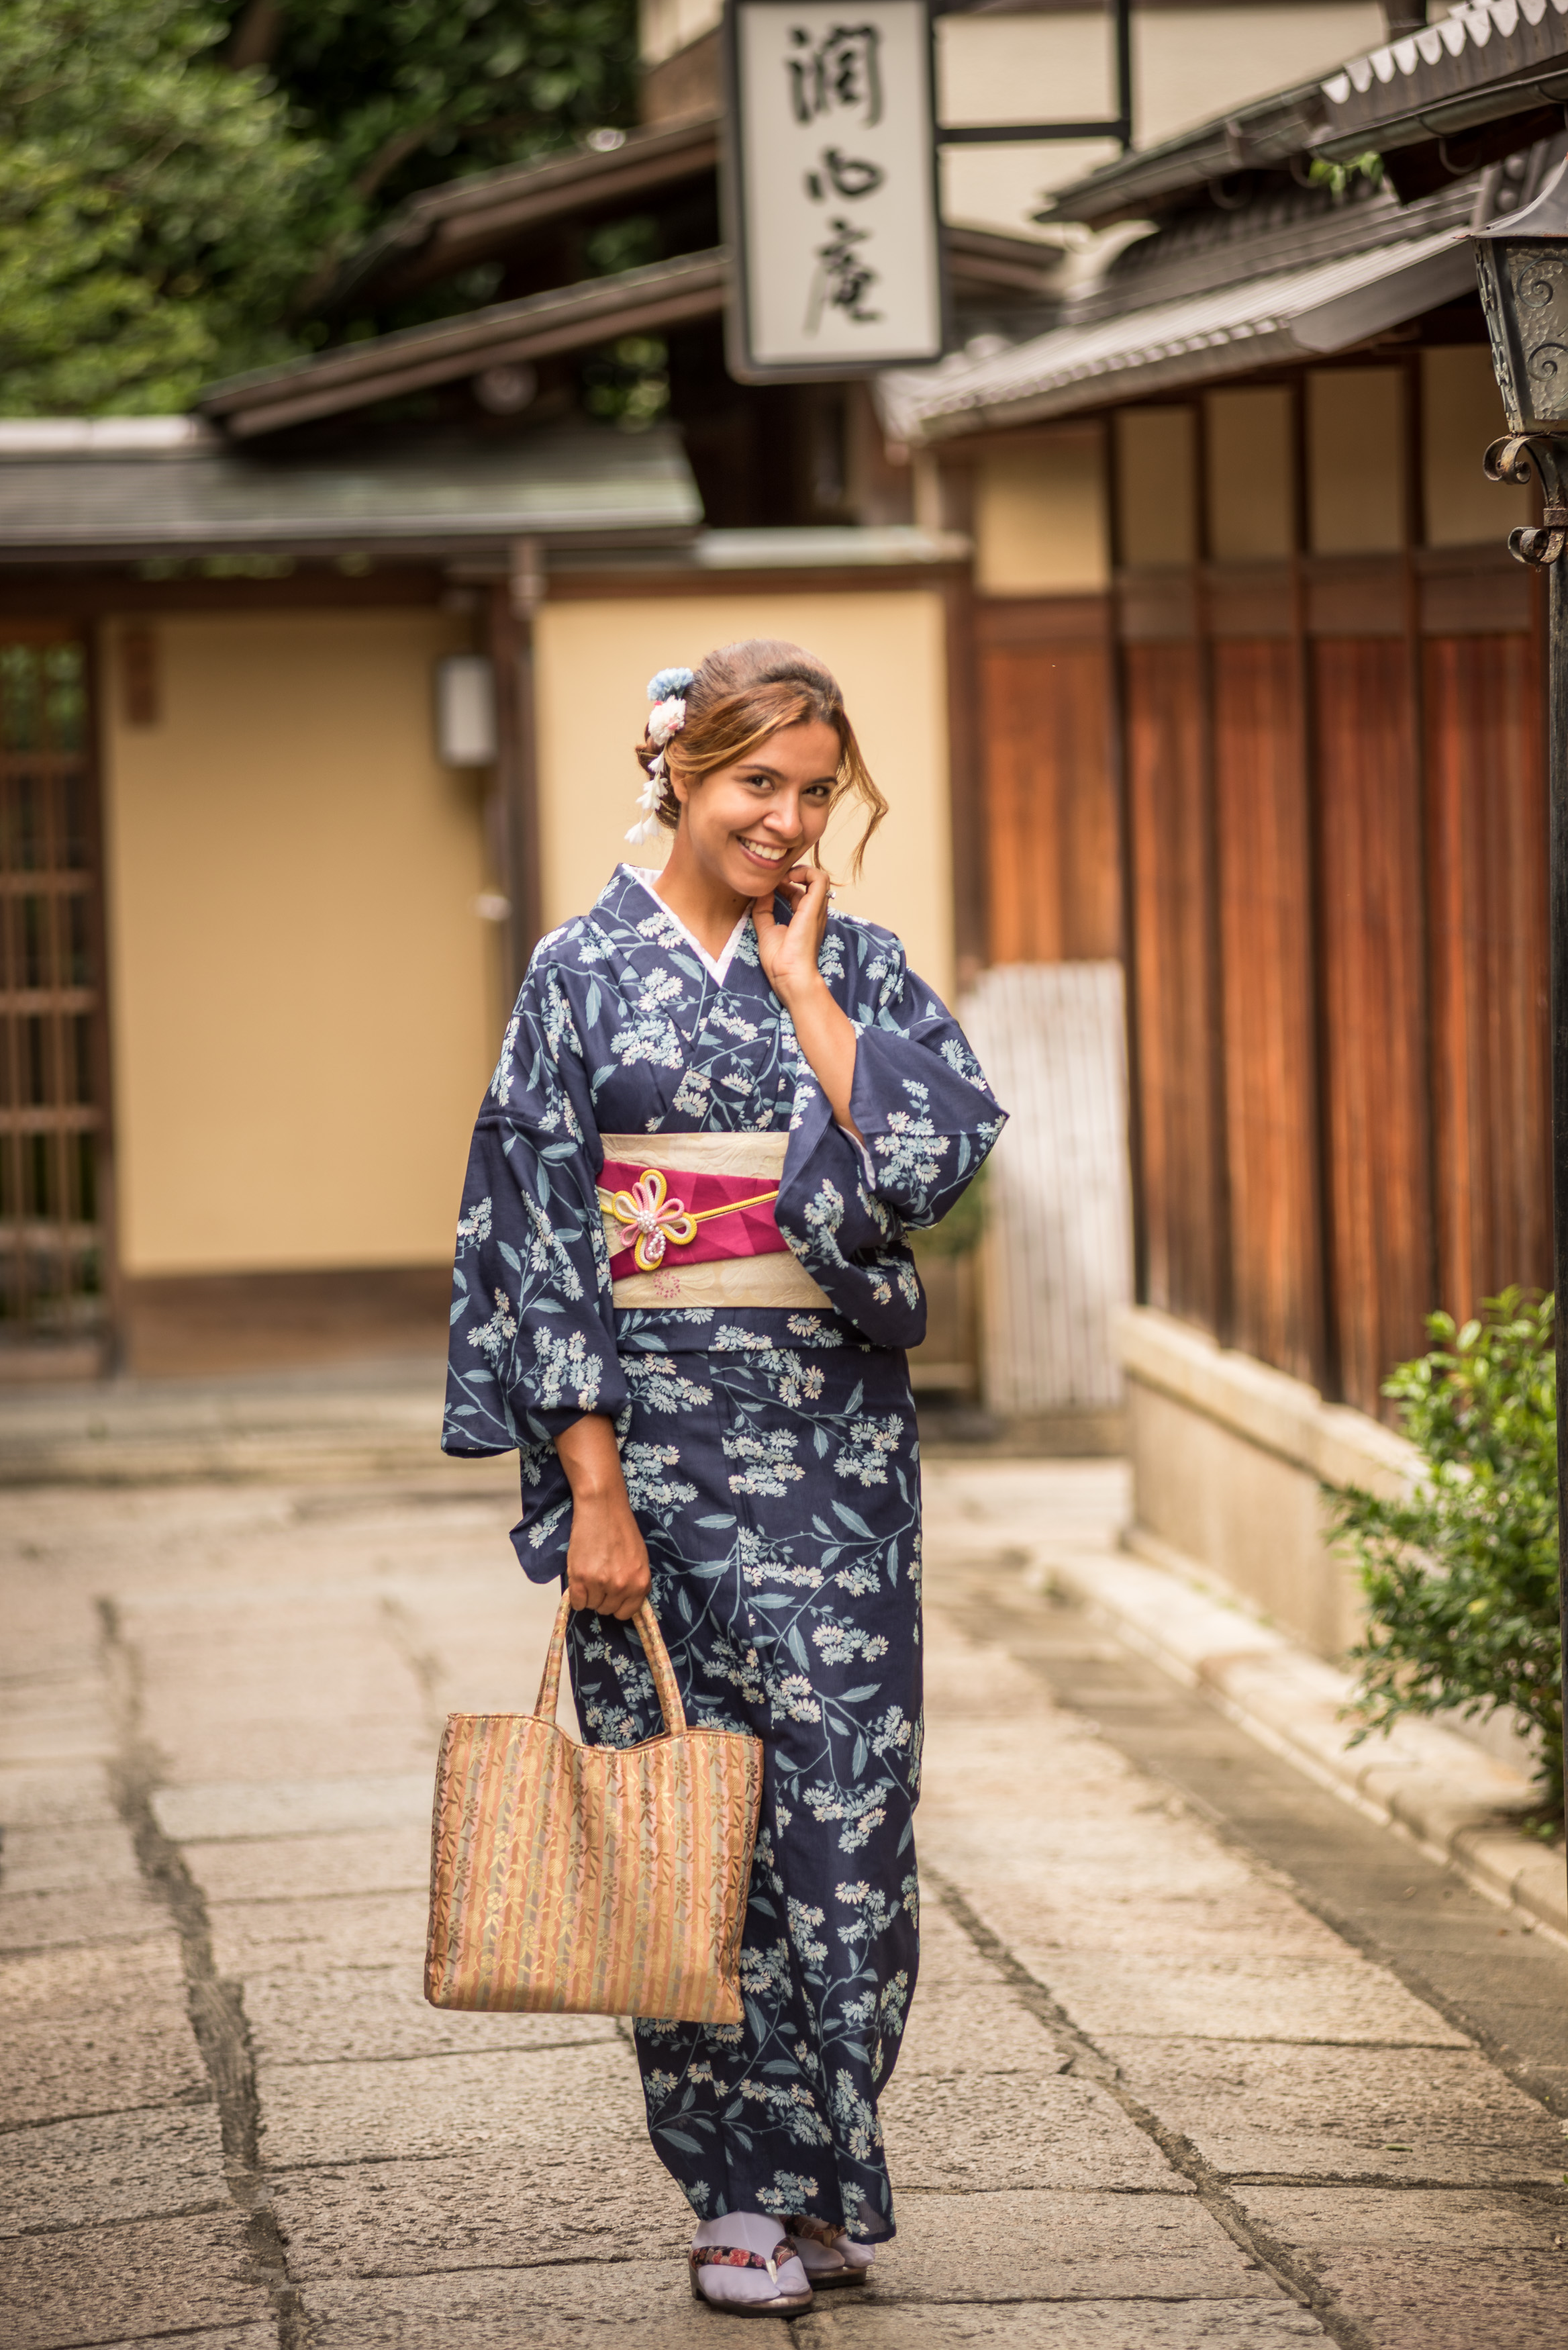 things-to-do-in-kyoto-7.JPG